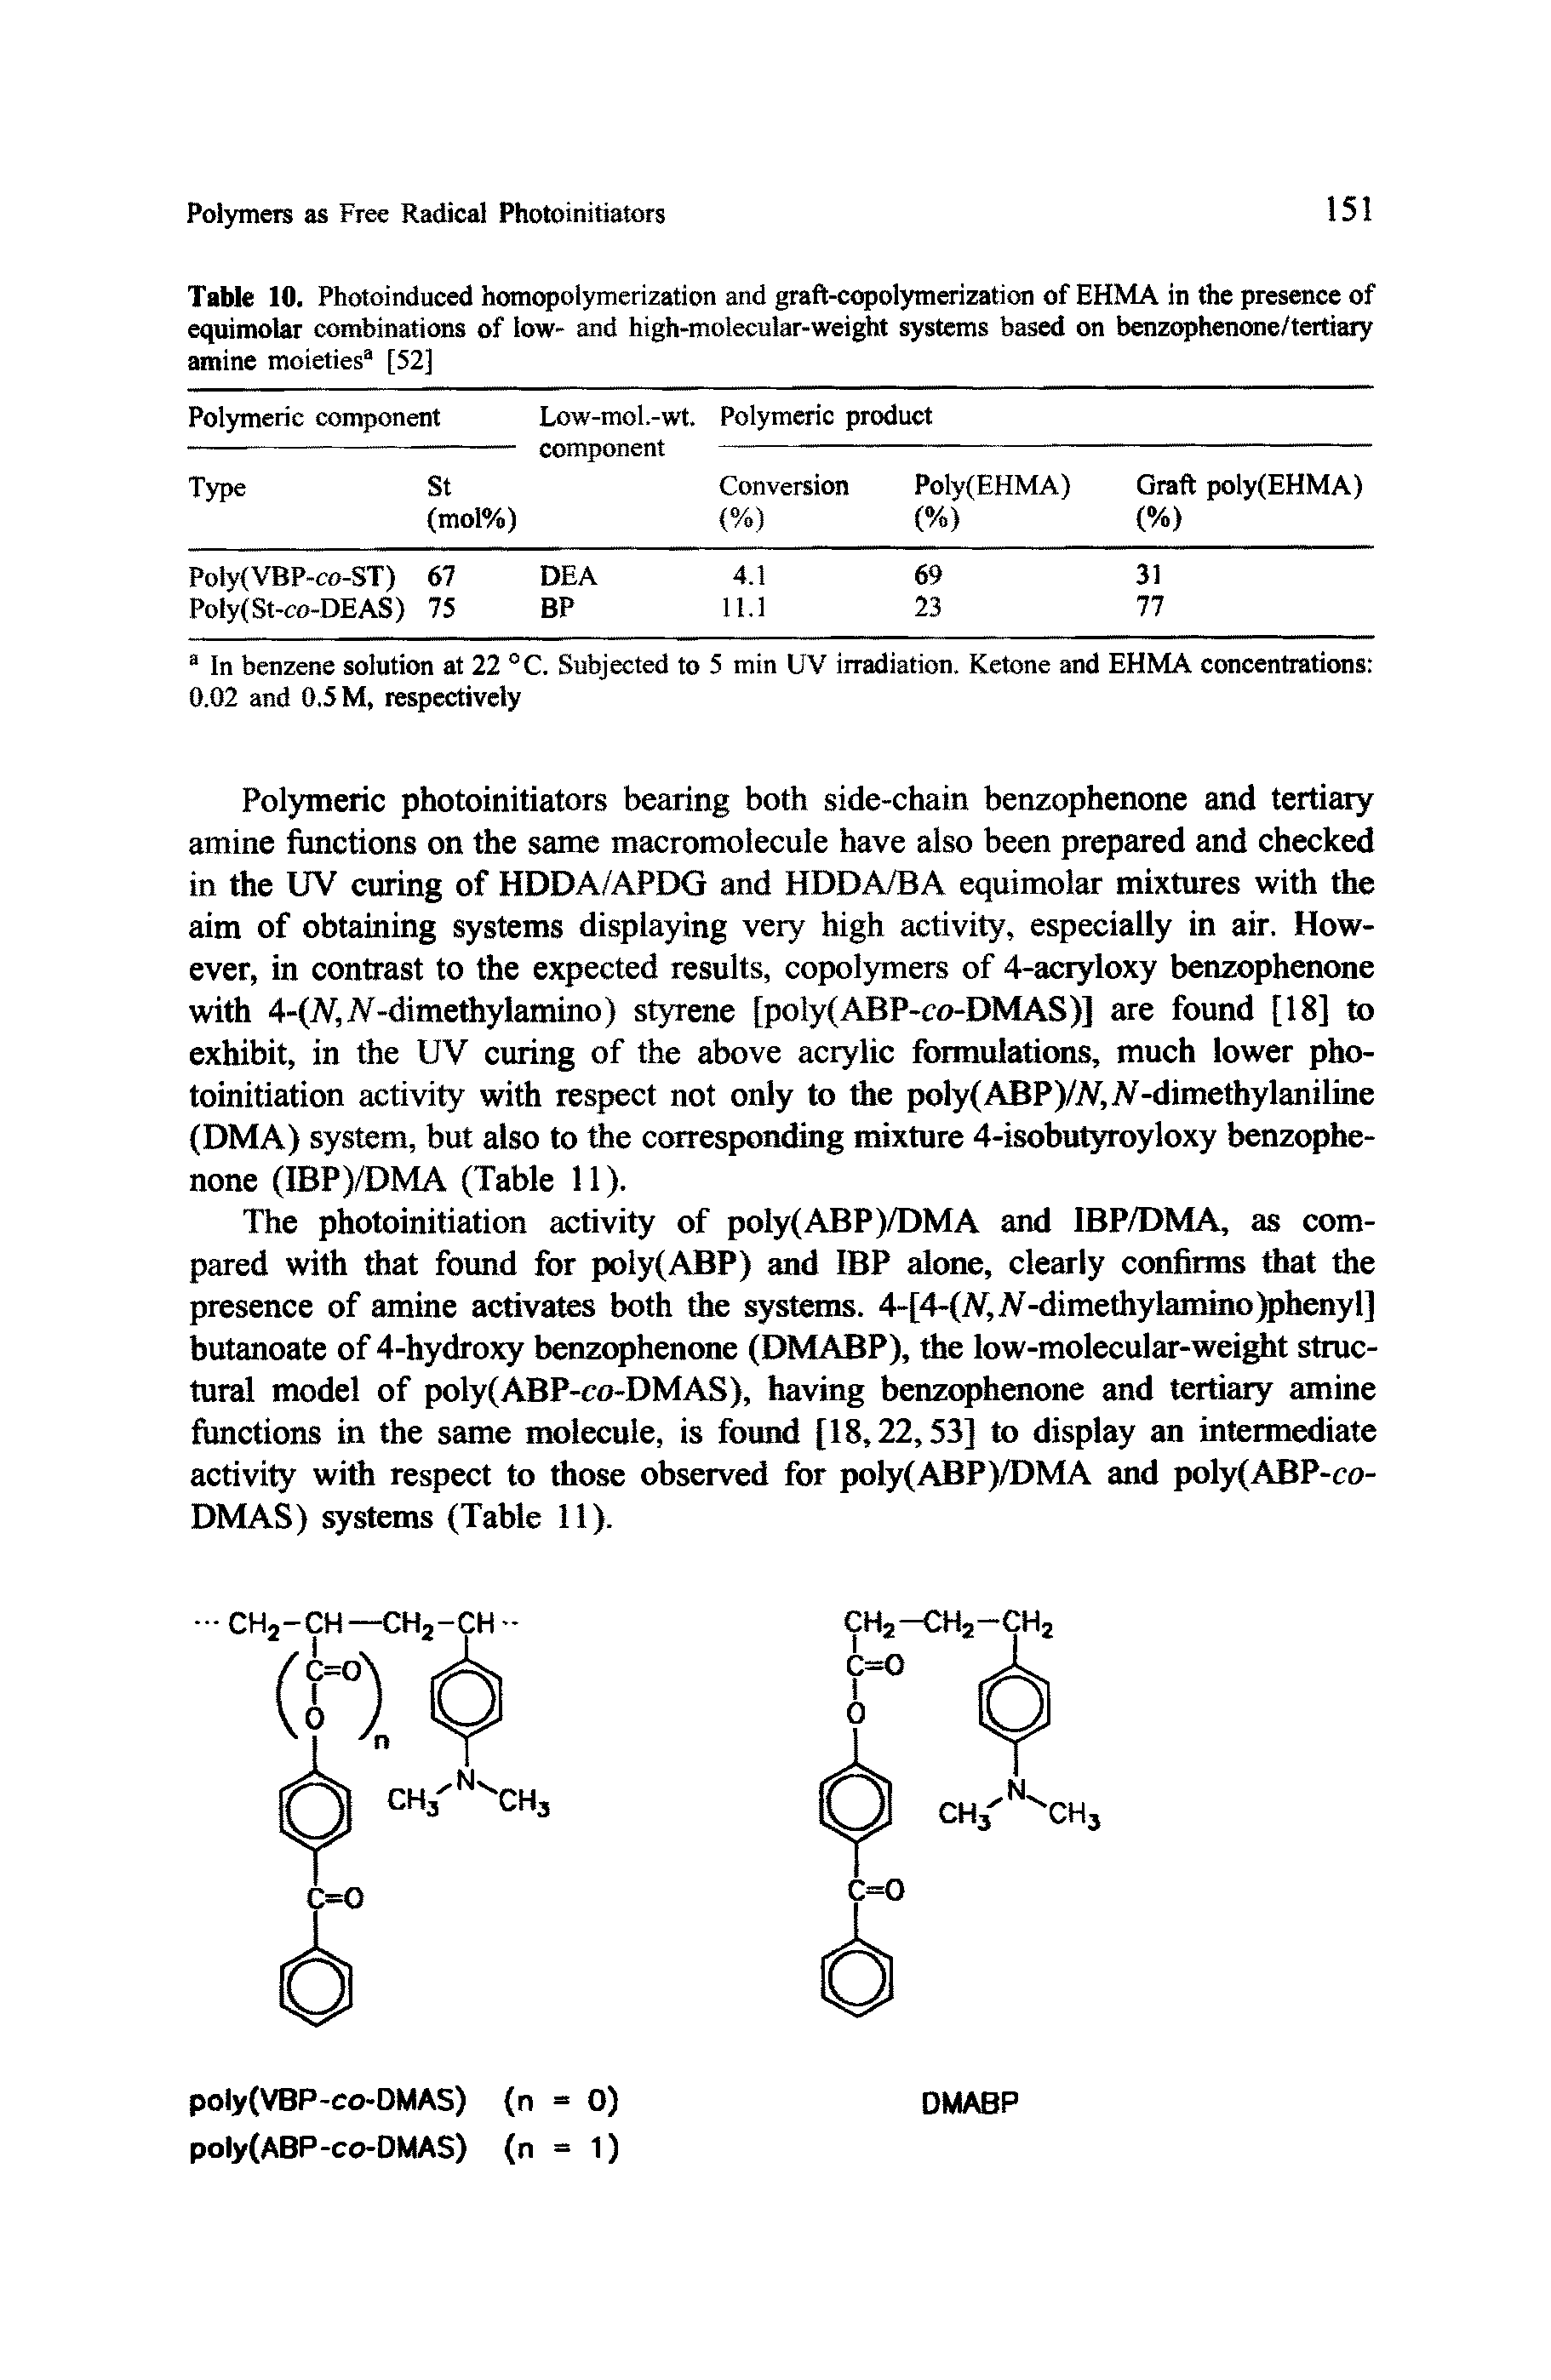 "Table 10. Photoinduced homopolymerization and <a href=""/info/graft_copolymerization"">graft-copolymerization</a> of EHMA in the presence of equimolar combinations of tow- and <a href=""/info/dna_high_molecular_weight"">high-molecular-weight</a> <a href=""/info/web_based_systems"">systems based</a> on <a href=""/info/benzophenone_by_tertiary_amines"">benzophenone/tertiary amine</a> moieties [52]"